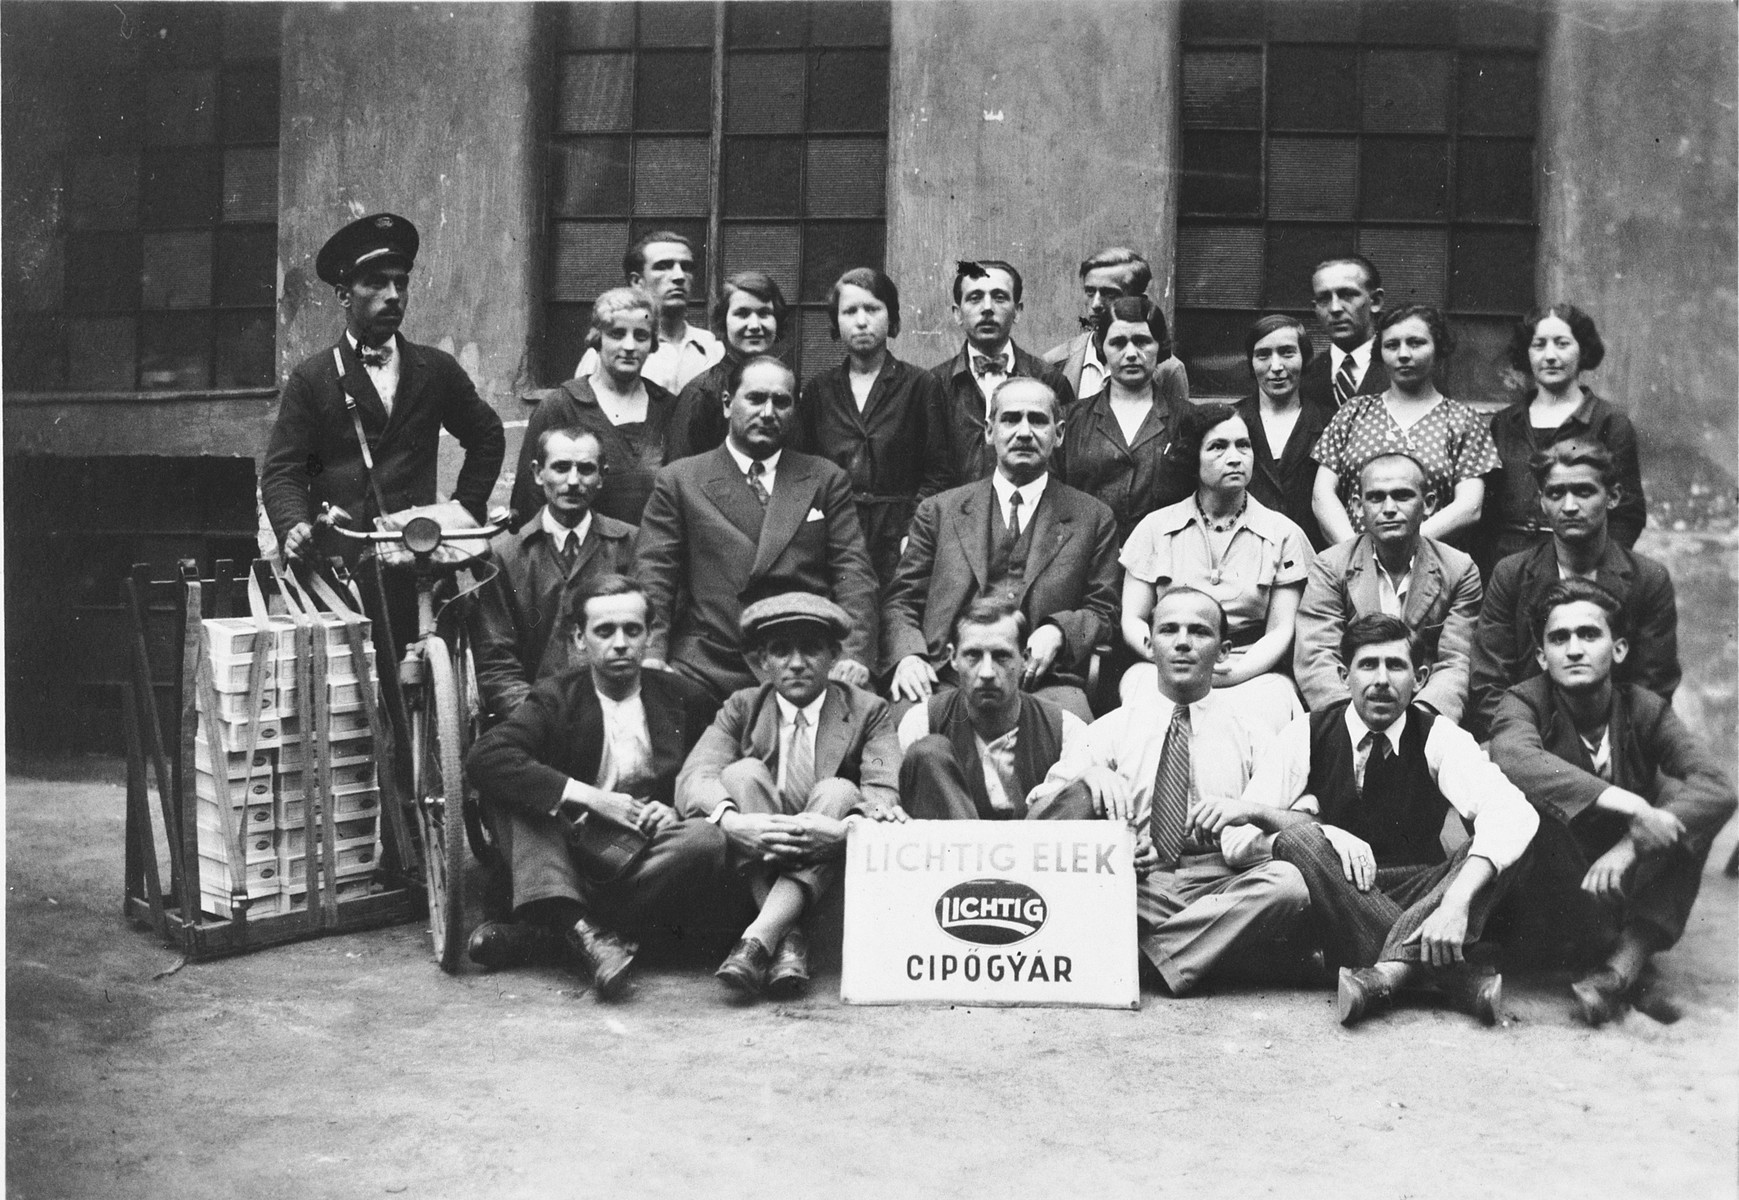 Group portrait of the employees of Elek Lichtig's shoe factory in Budapest, Hungary.